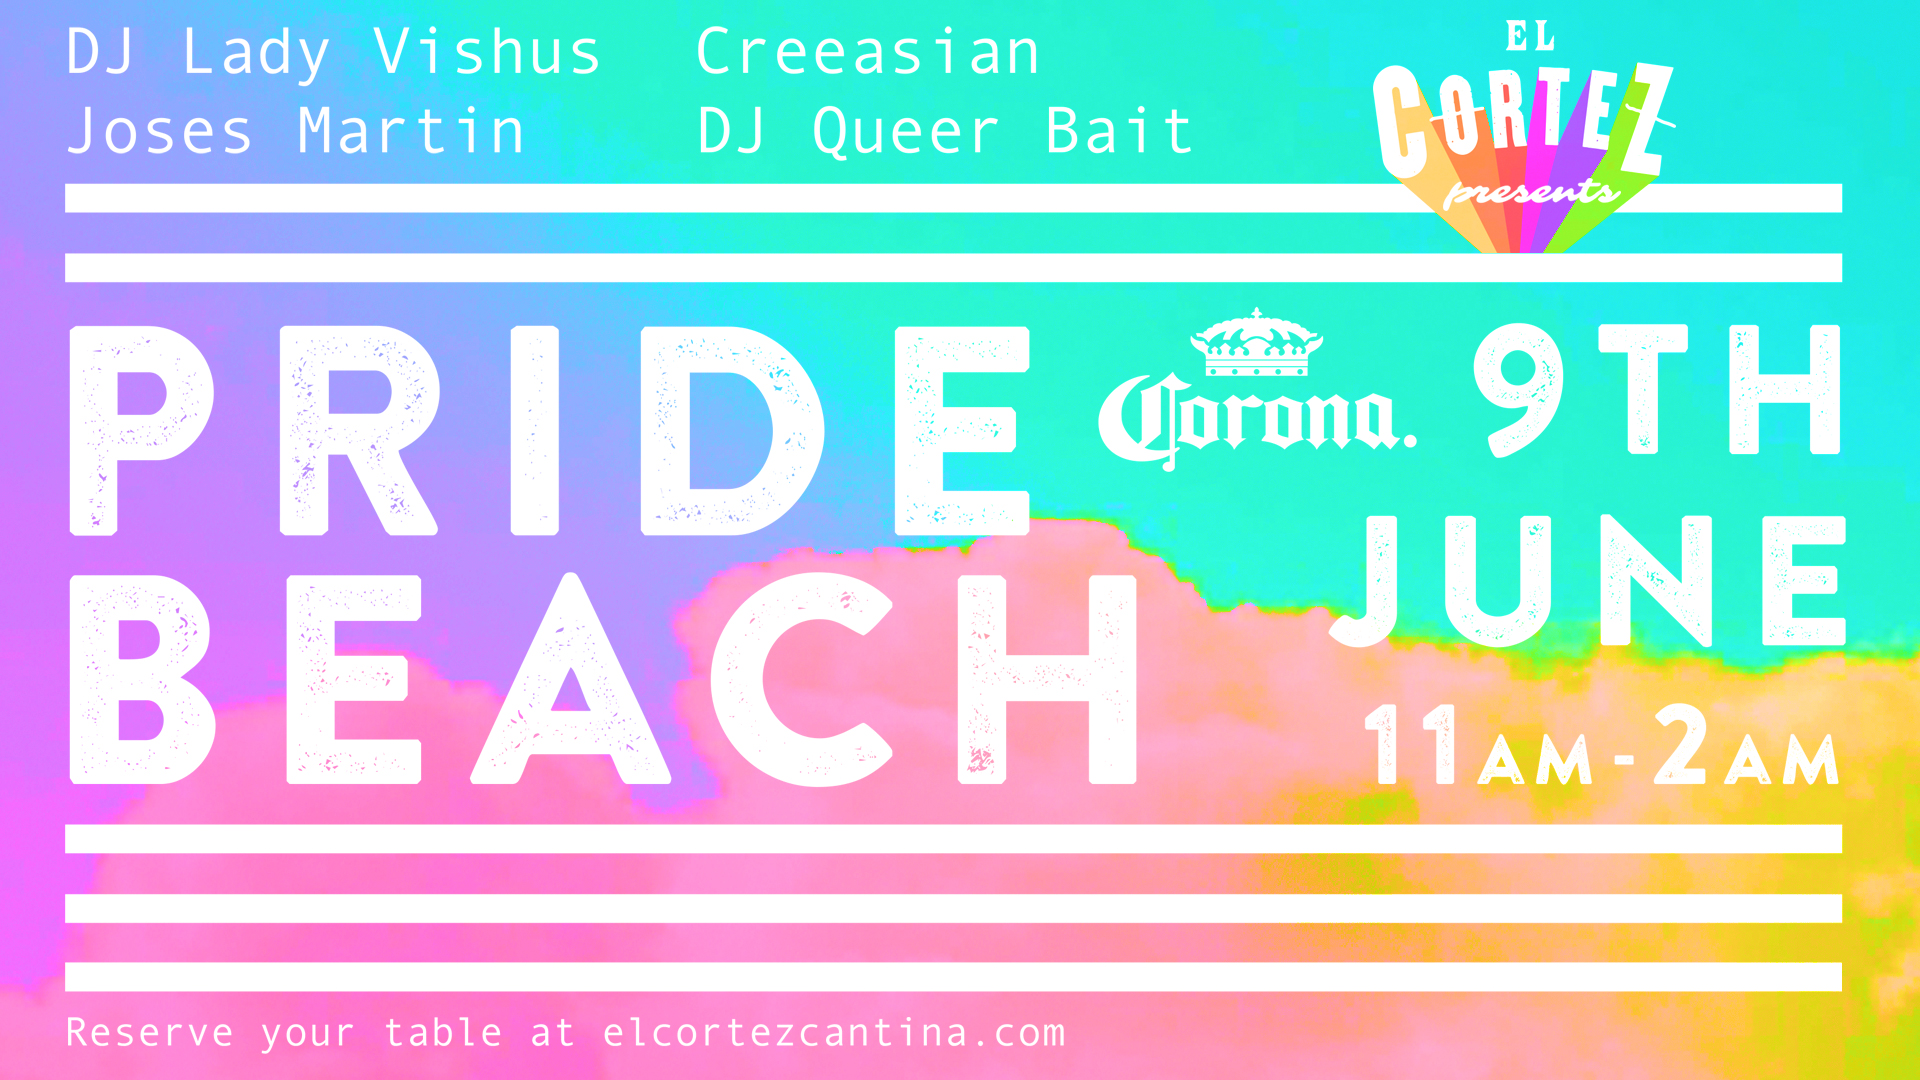 Celebrate Pride with our Pride Beach Party!   DJs will be playing tropical vibes out on the patio and buckets of Corona will be on special! Don't forget your water wings!    Patio DJ Schedule: Lady Vishus 12:30-4:30pm Joses Martin 4:30-9:00pm Creeasian 9pm-12am  DJ Queer Bait will be in the Tequila Cellar 9pm-close!  Buckets of Corona will be on special for $25! (5x330ml)  Reserve your table  HERE . Please note that we do not accept reservations on the patio.